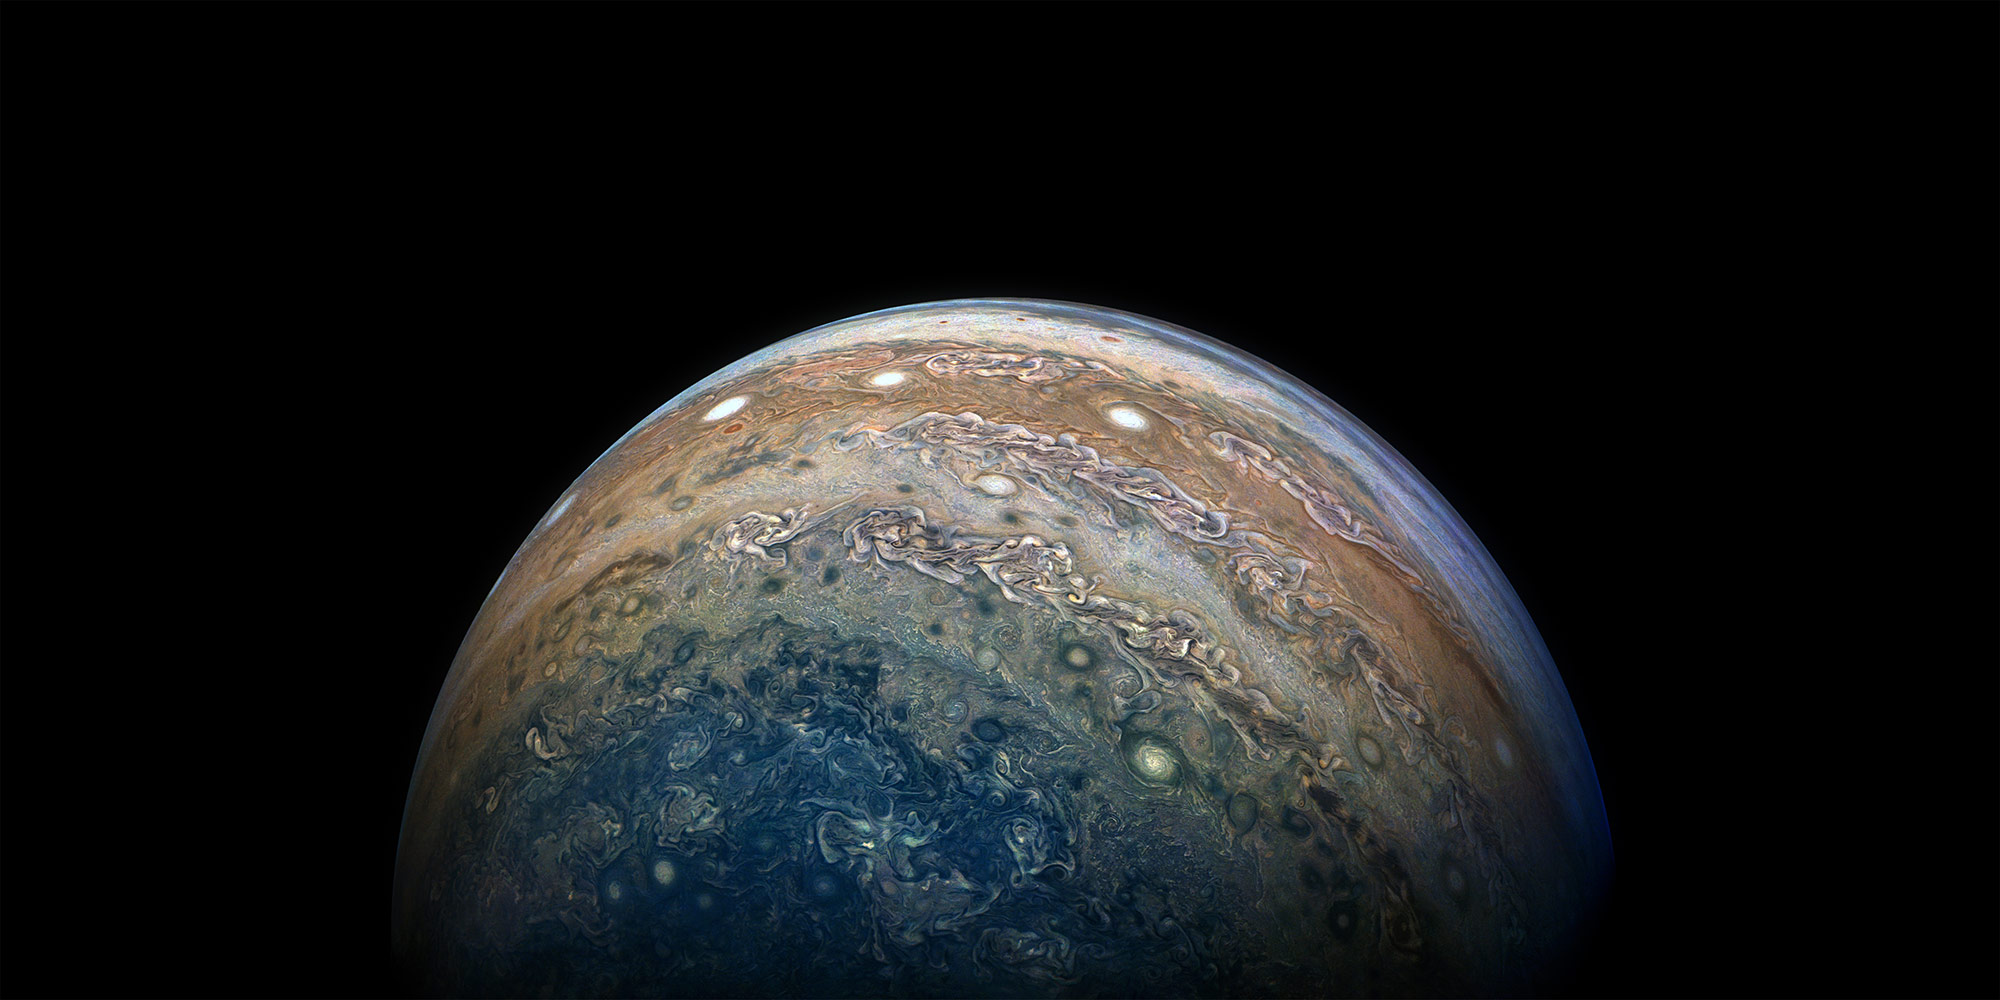 Take a Look These Amazing New Photos of Jupiter | Real Simple